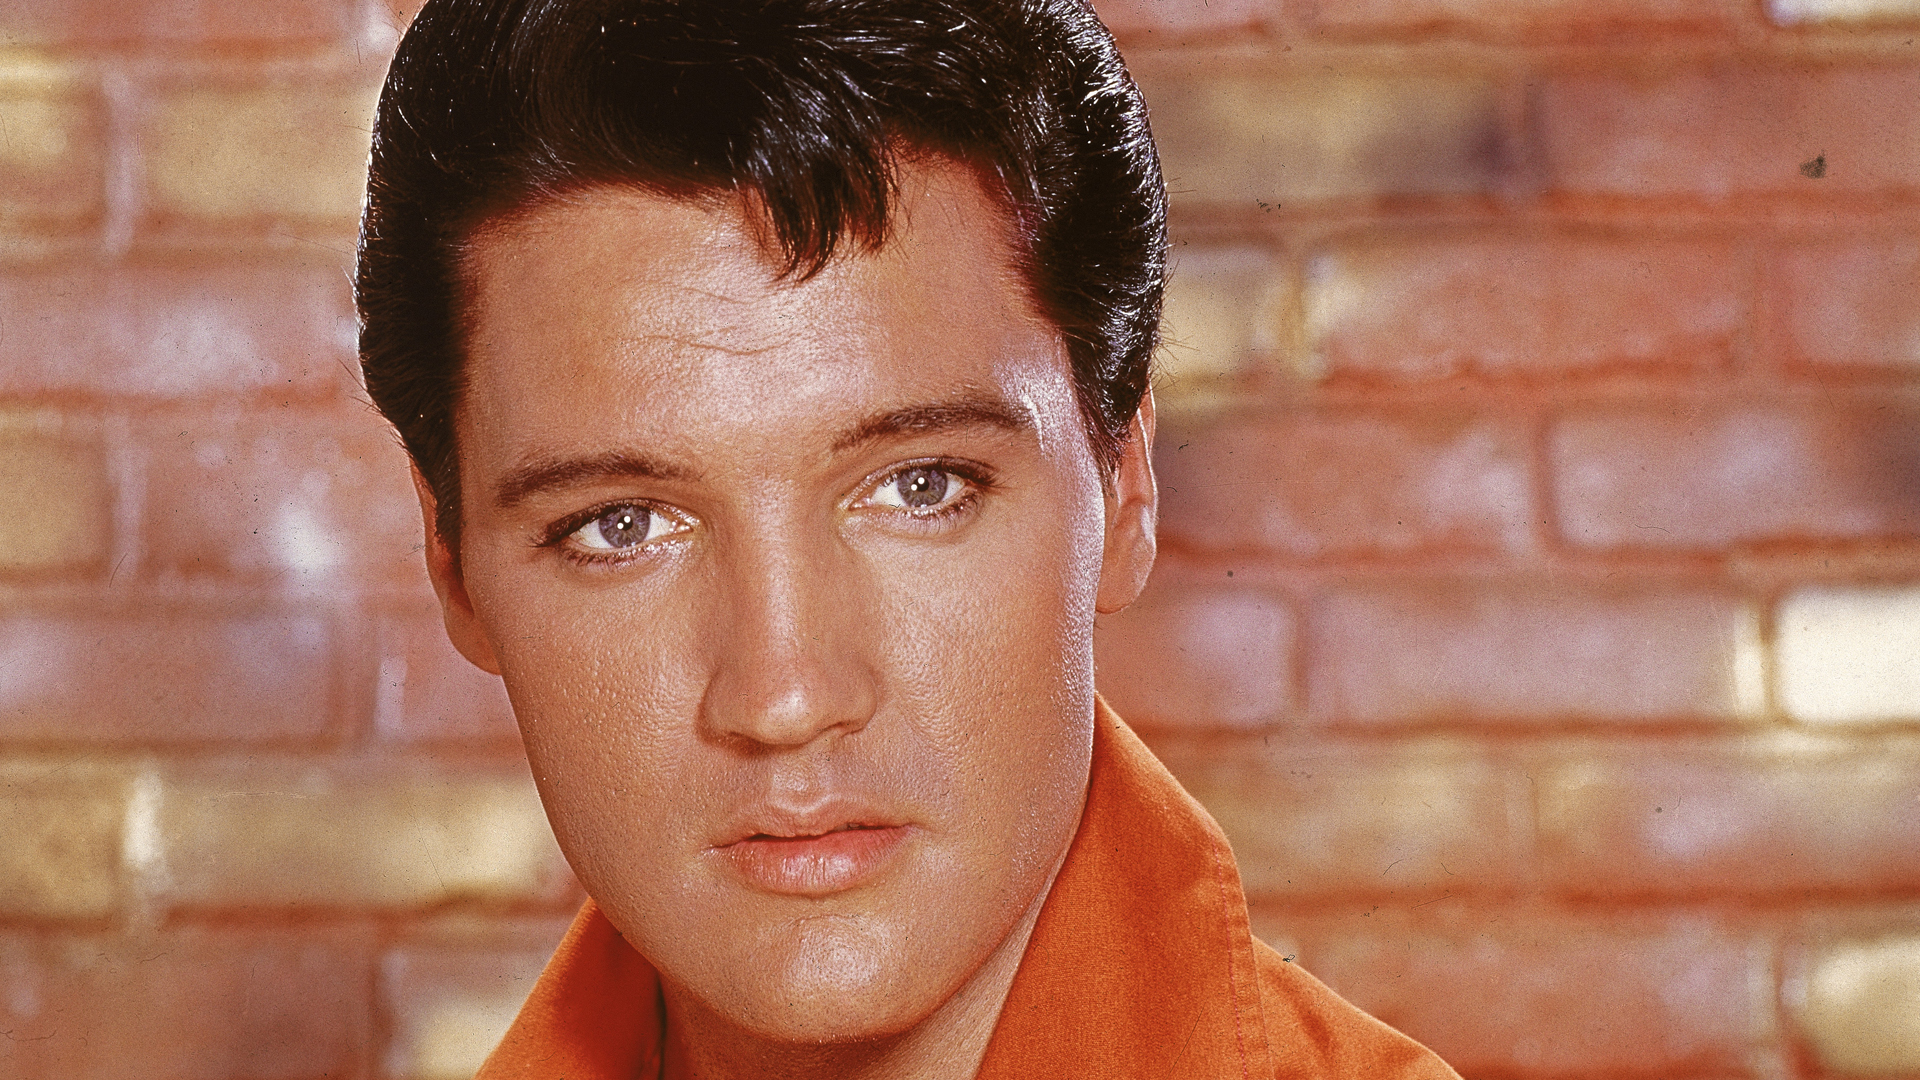 Elvis Presley is seen in a portrait from mid 1960s. (Credit: Hulton Archive/Getty Images)